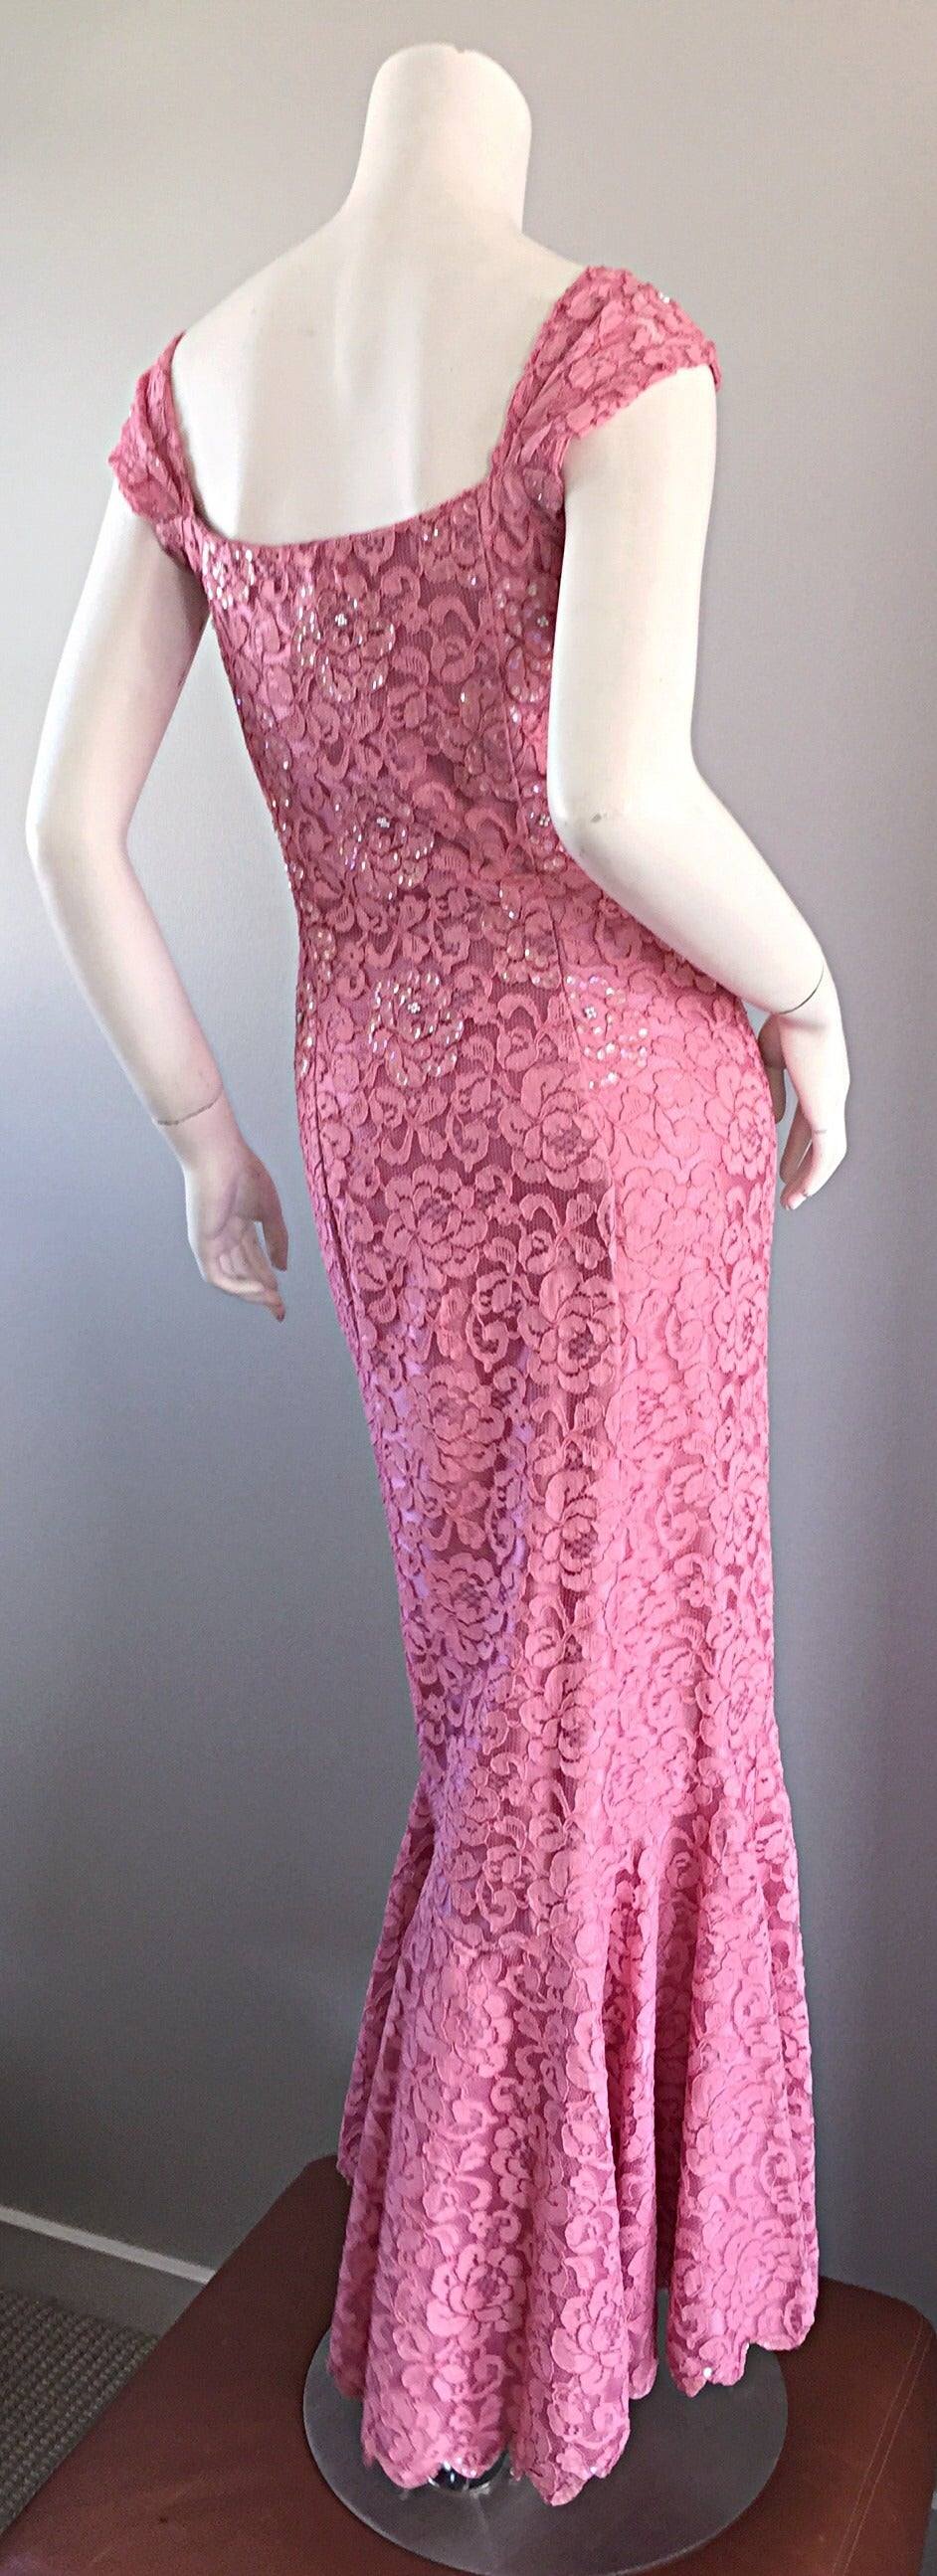 Gorgeous 1950s 50s Couture Pink Vintage Mermaid Dress w/ Chantilly Lace + Sequin 4